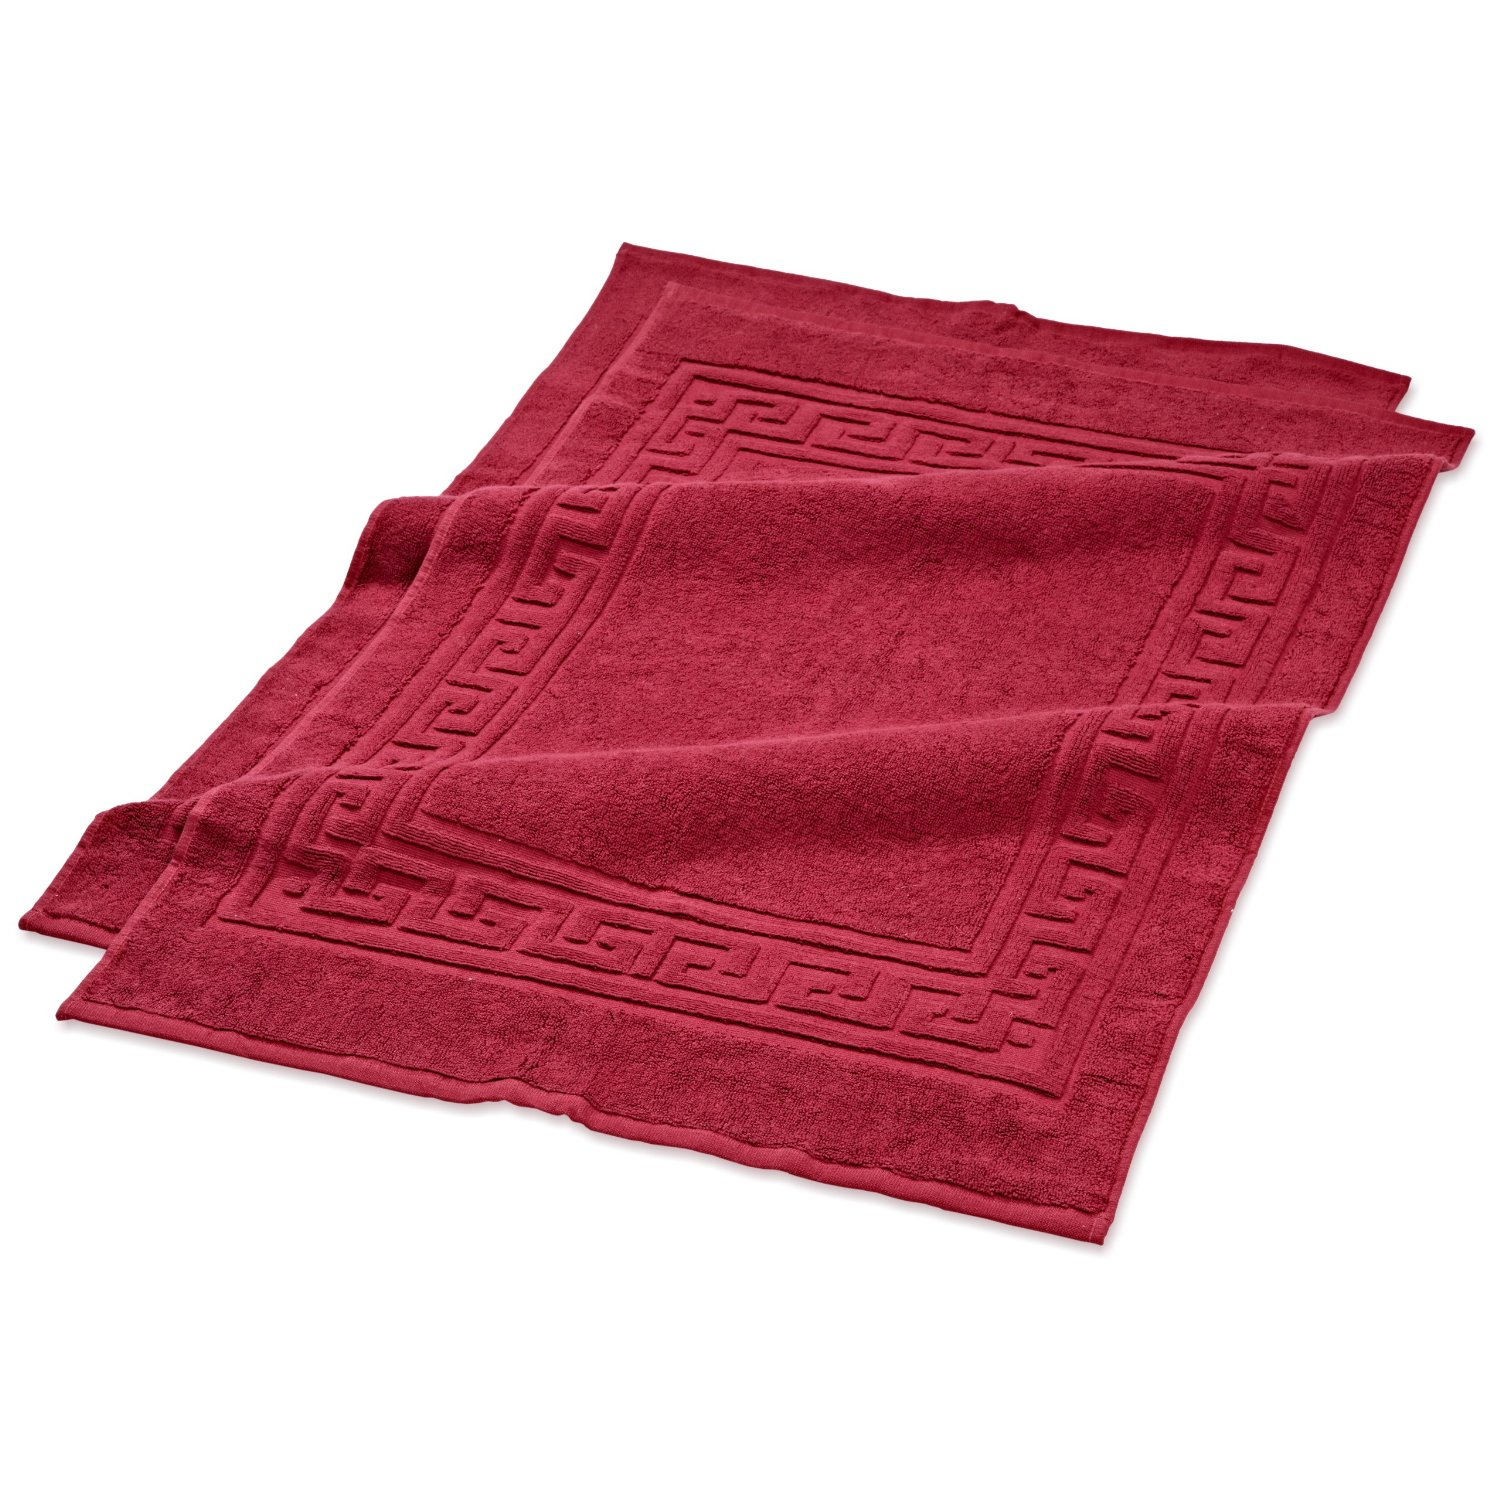 Superior 900GSM Egyptian Cotton 2-Piece Bath Mat Set